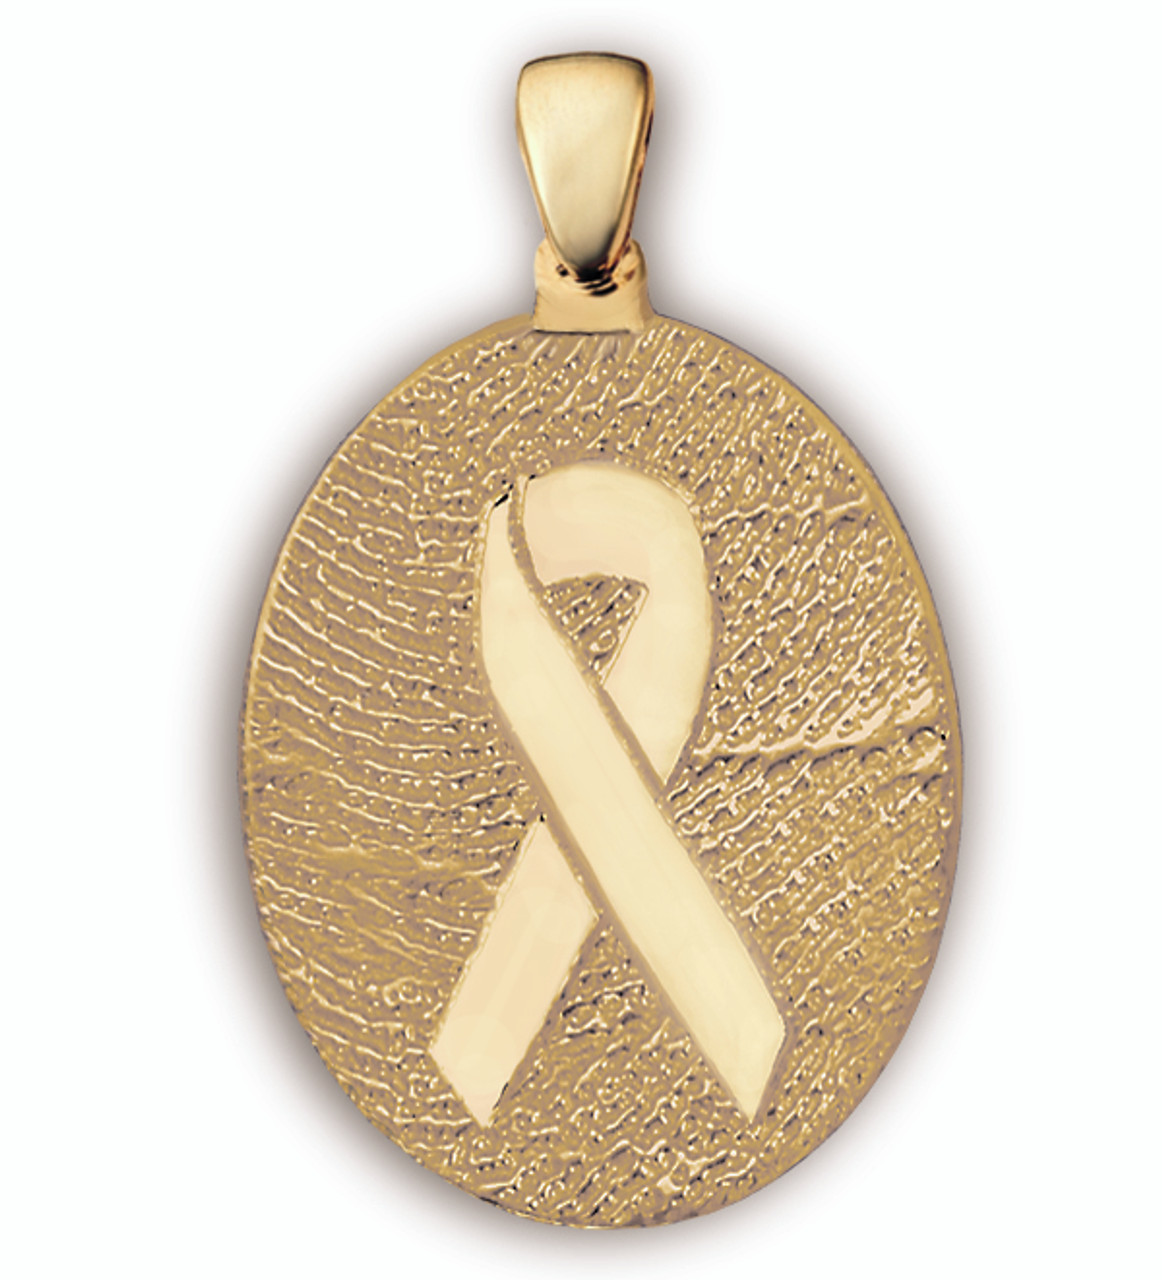 Grand Charm - Personal Expressions in 14k Yellow Gold with Ribbon Overlay